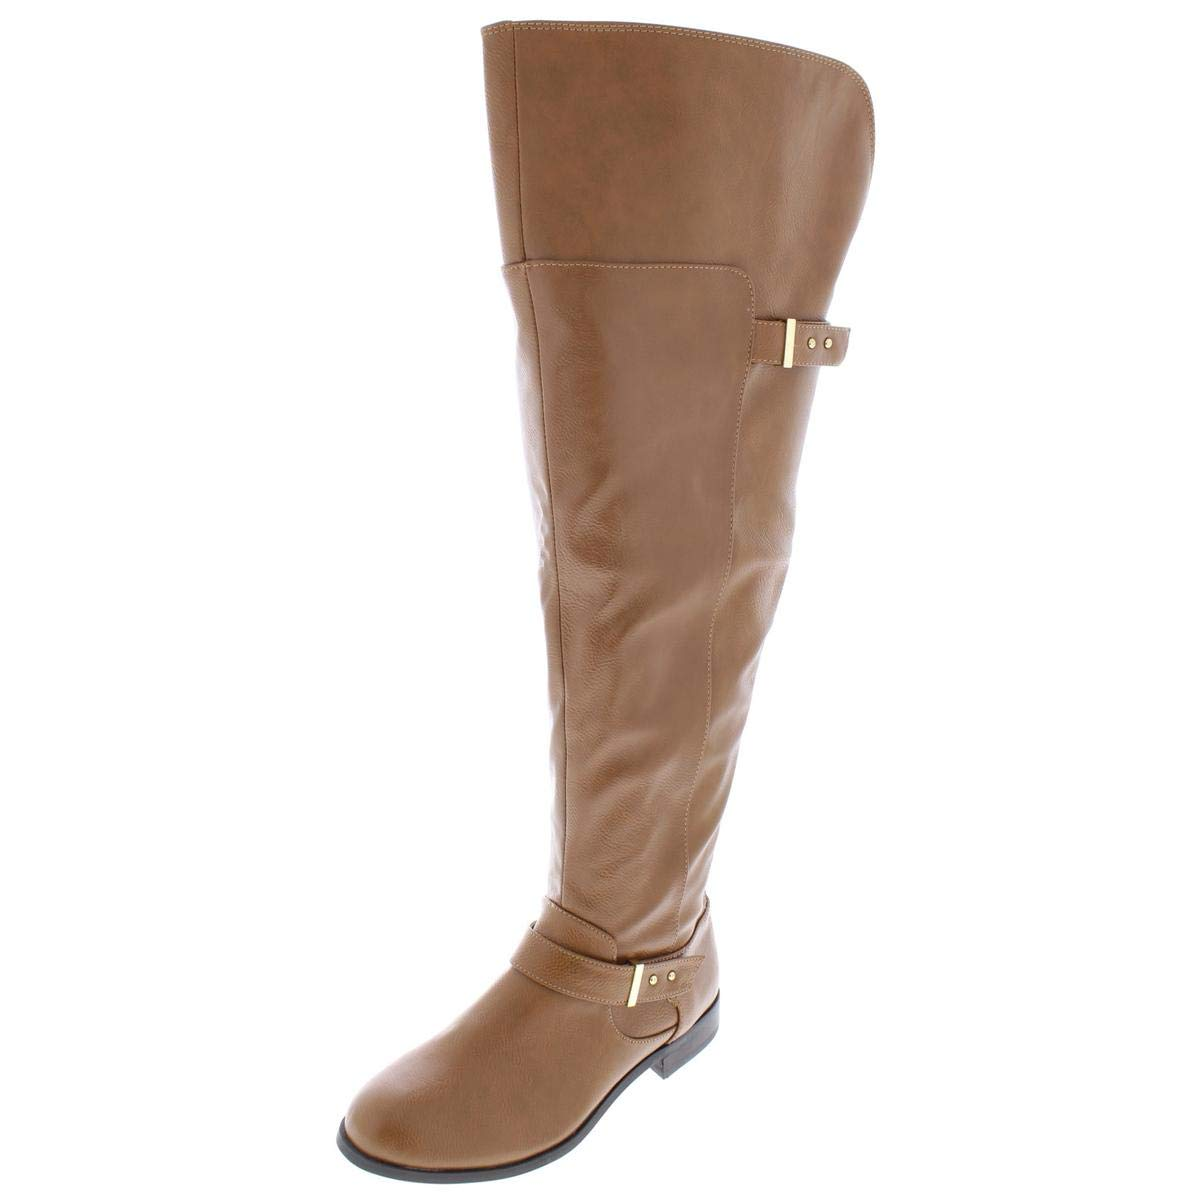 - Bar III Womens Daphne Wide Calf Over-The-Knee Boots Brown 6.5 Medium (B,M)